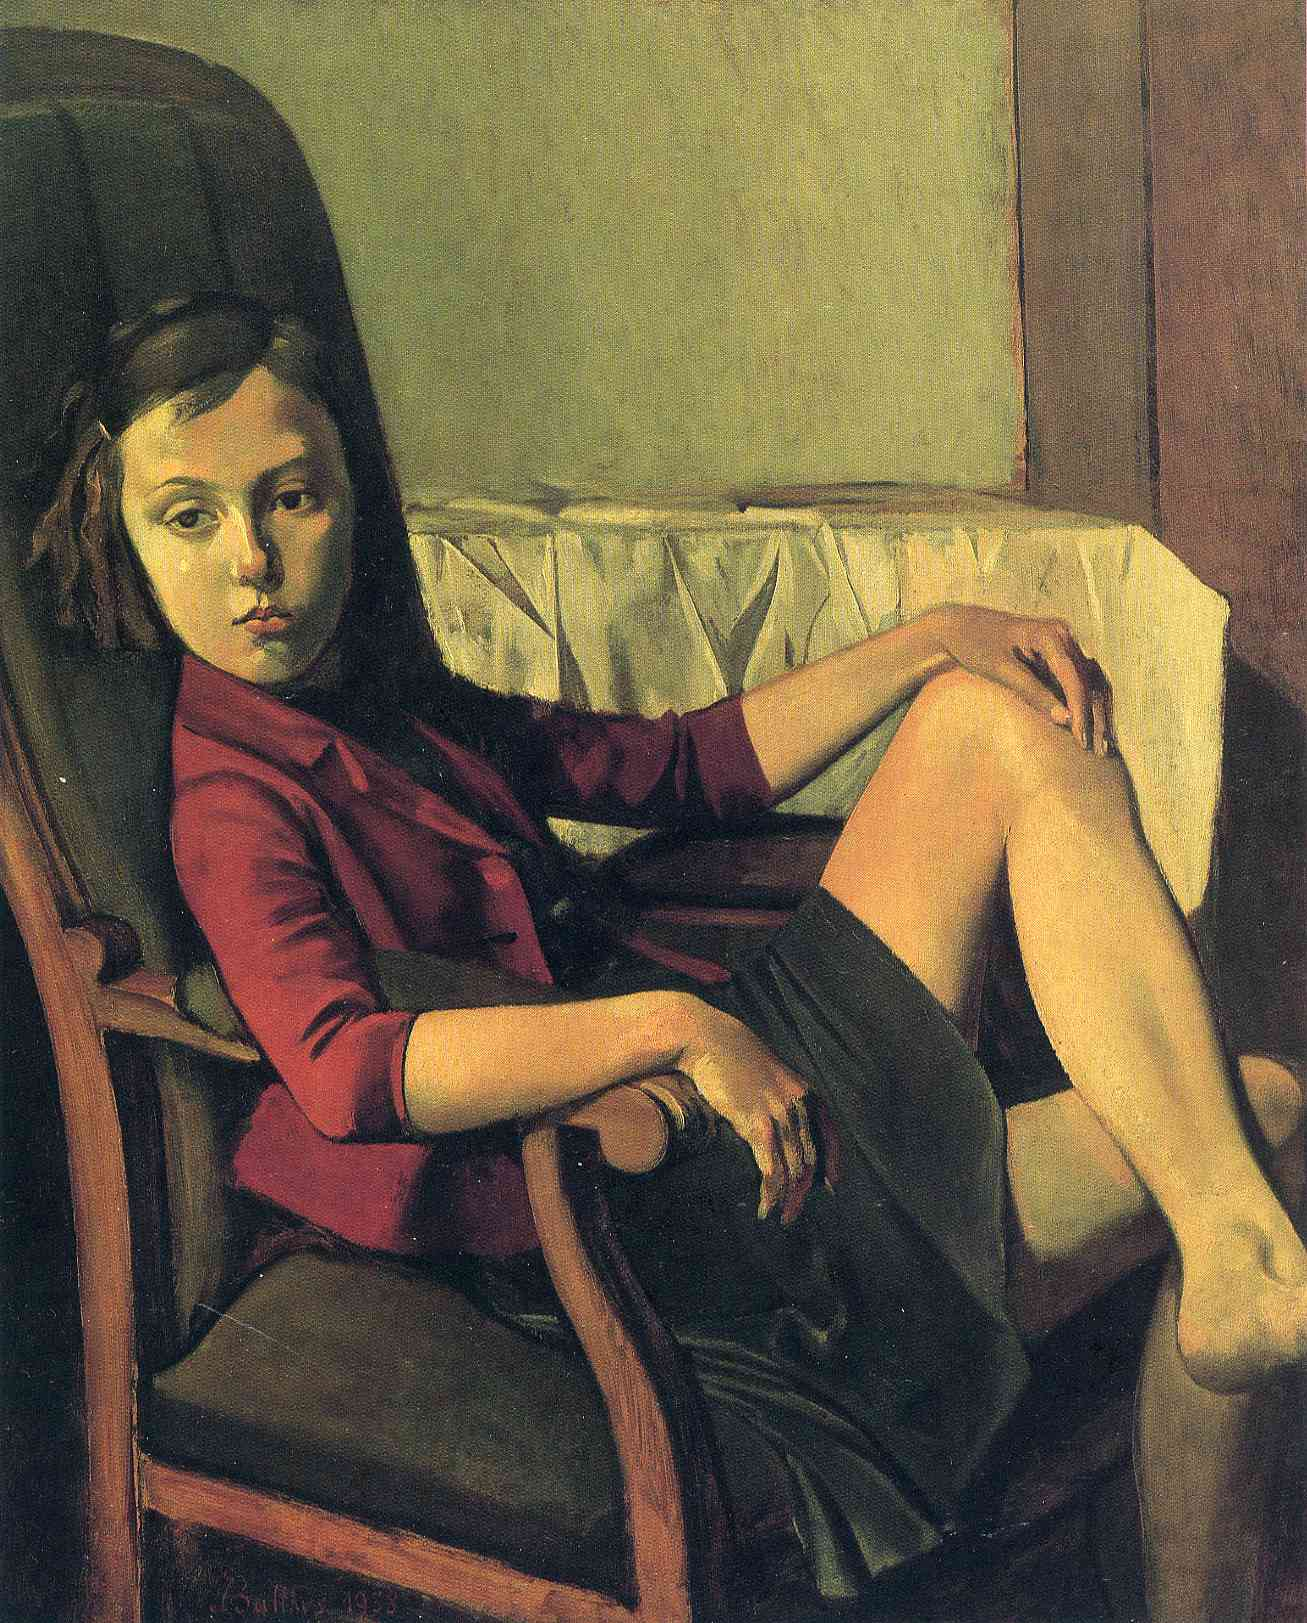 http://uploads8.wikipaintings.org/images/balthus/th%C3%A9r%C3%A8se-1938.jpg